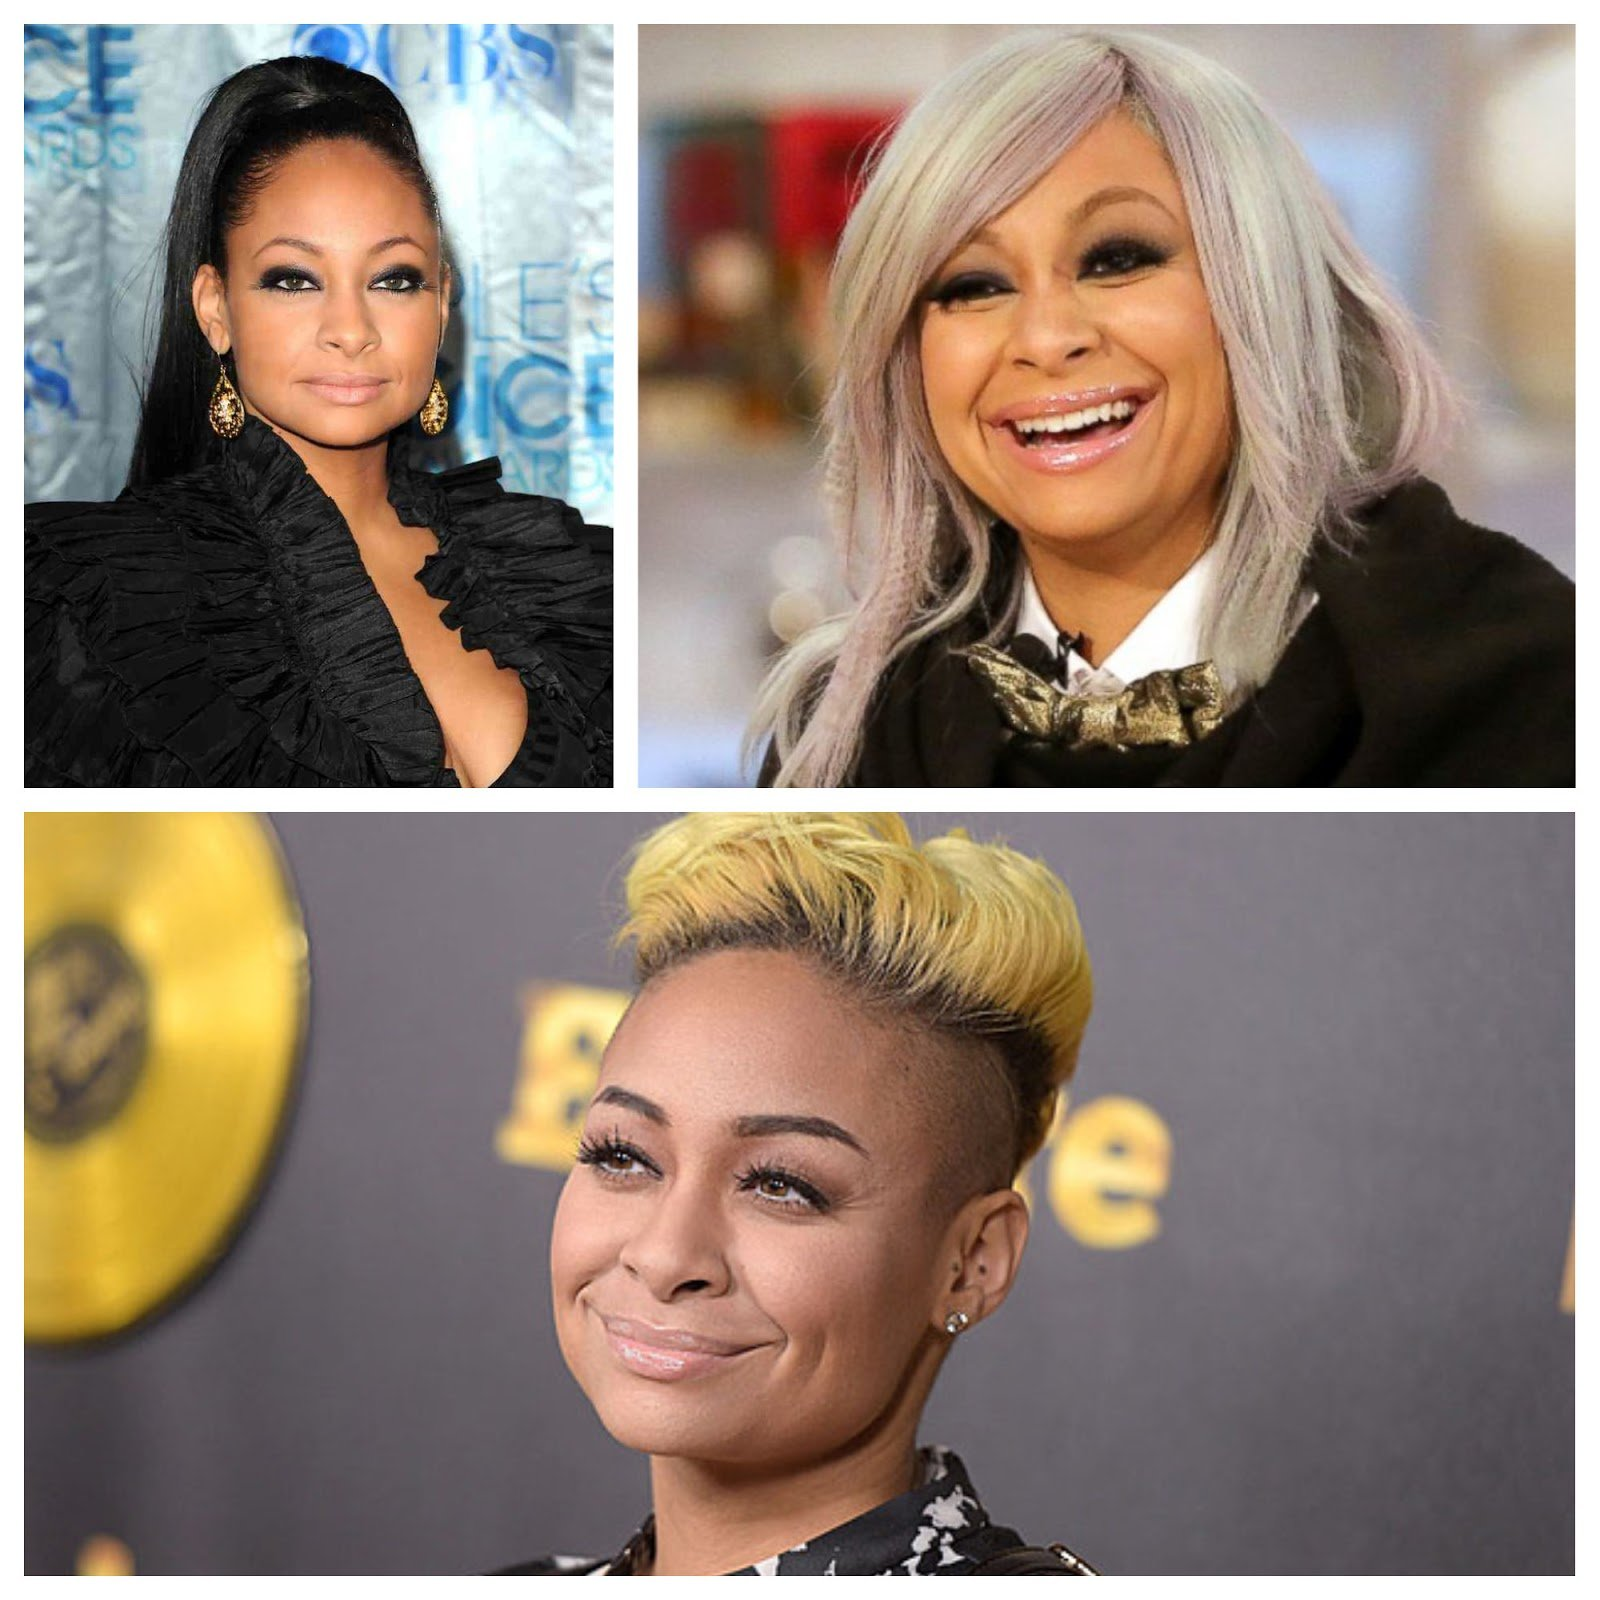 Raven-Symoné On Wigs, Weaves And Why You Won't Be Seeing Her Natural Curls